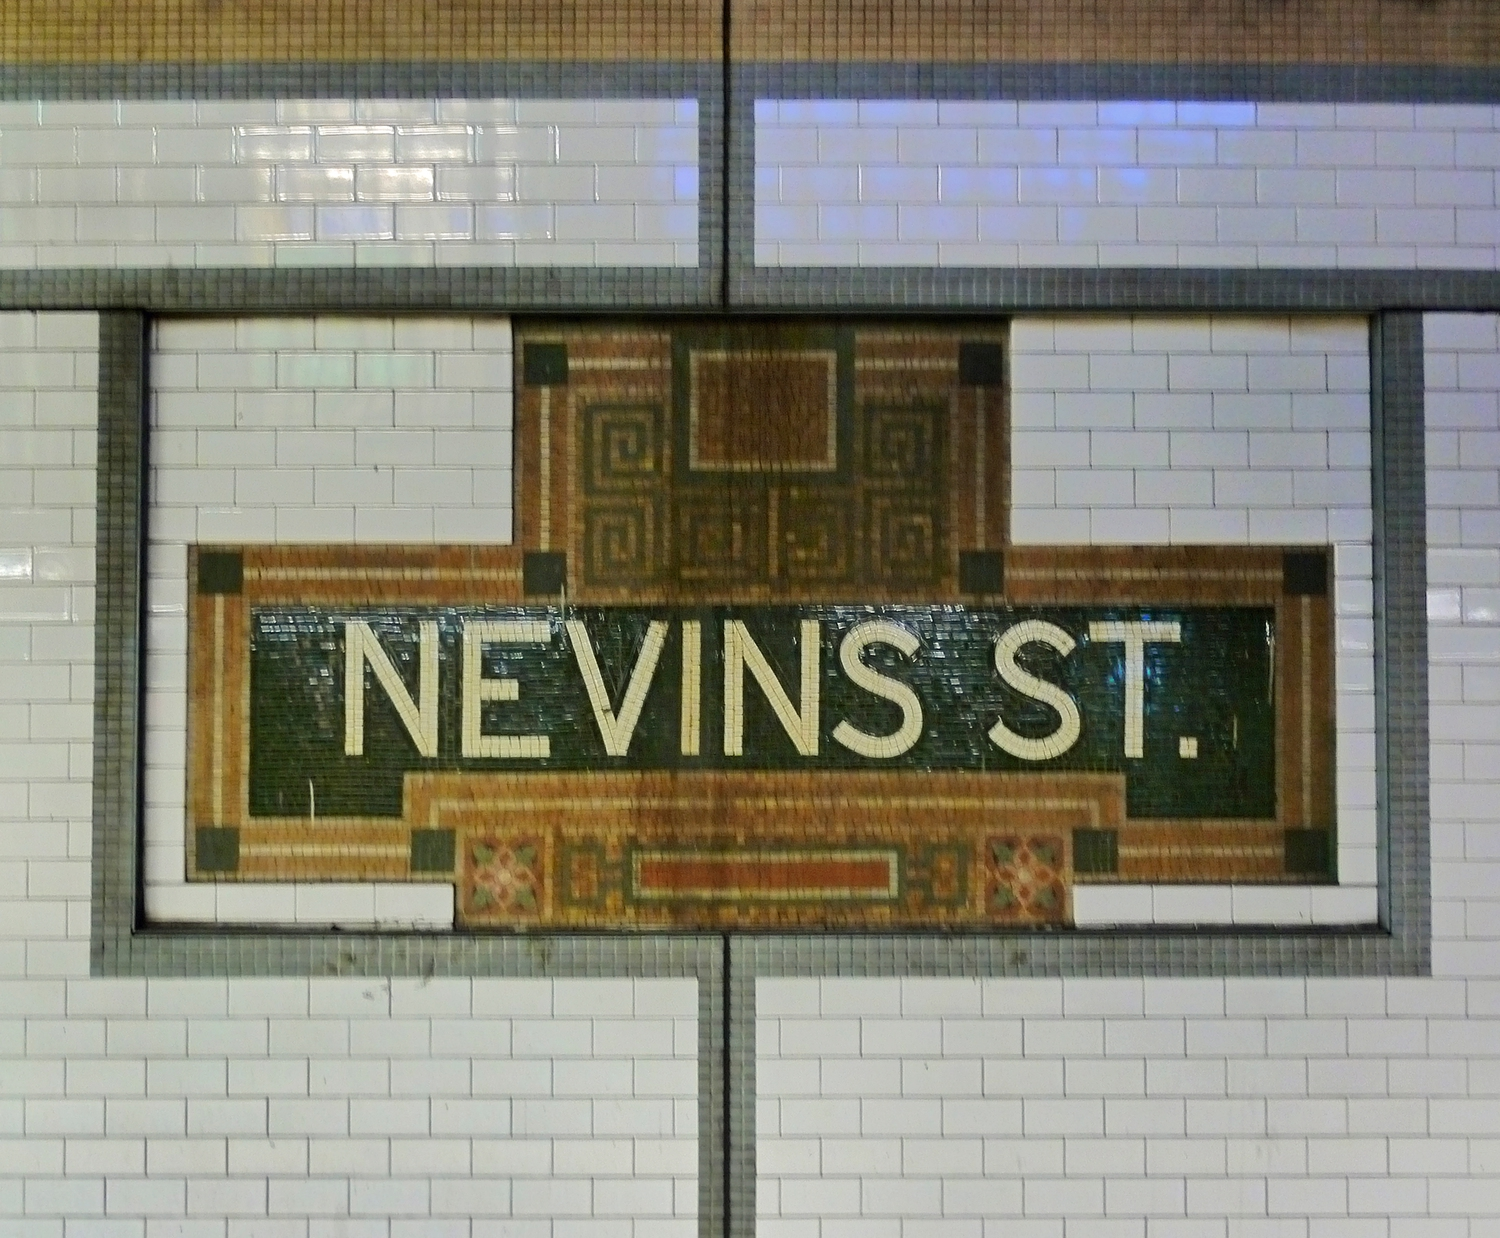 Subway Station Tile Work | From the downtown Brooklyn IRT subway station at Nevins Street.